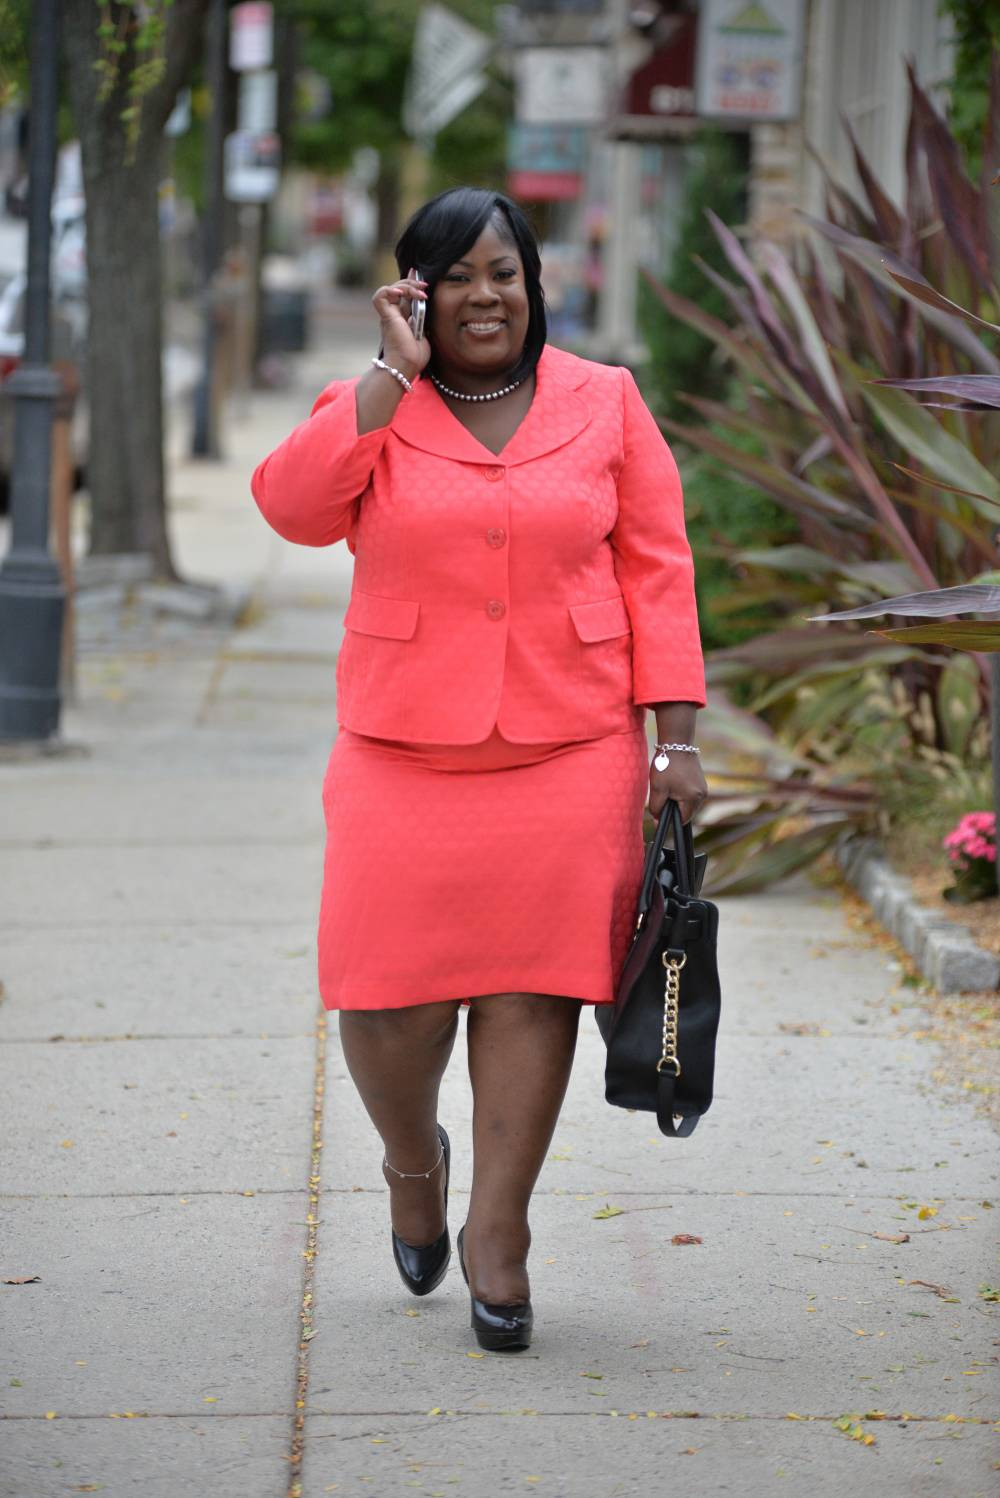 dress over 60 overweight accessory